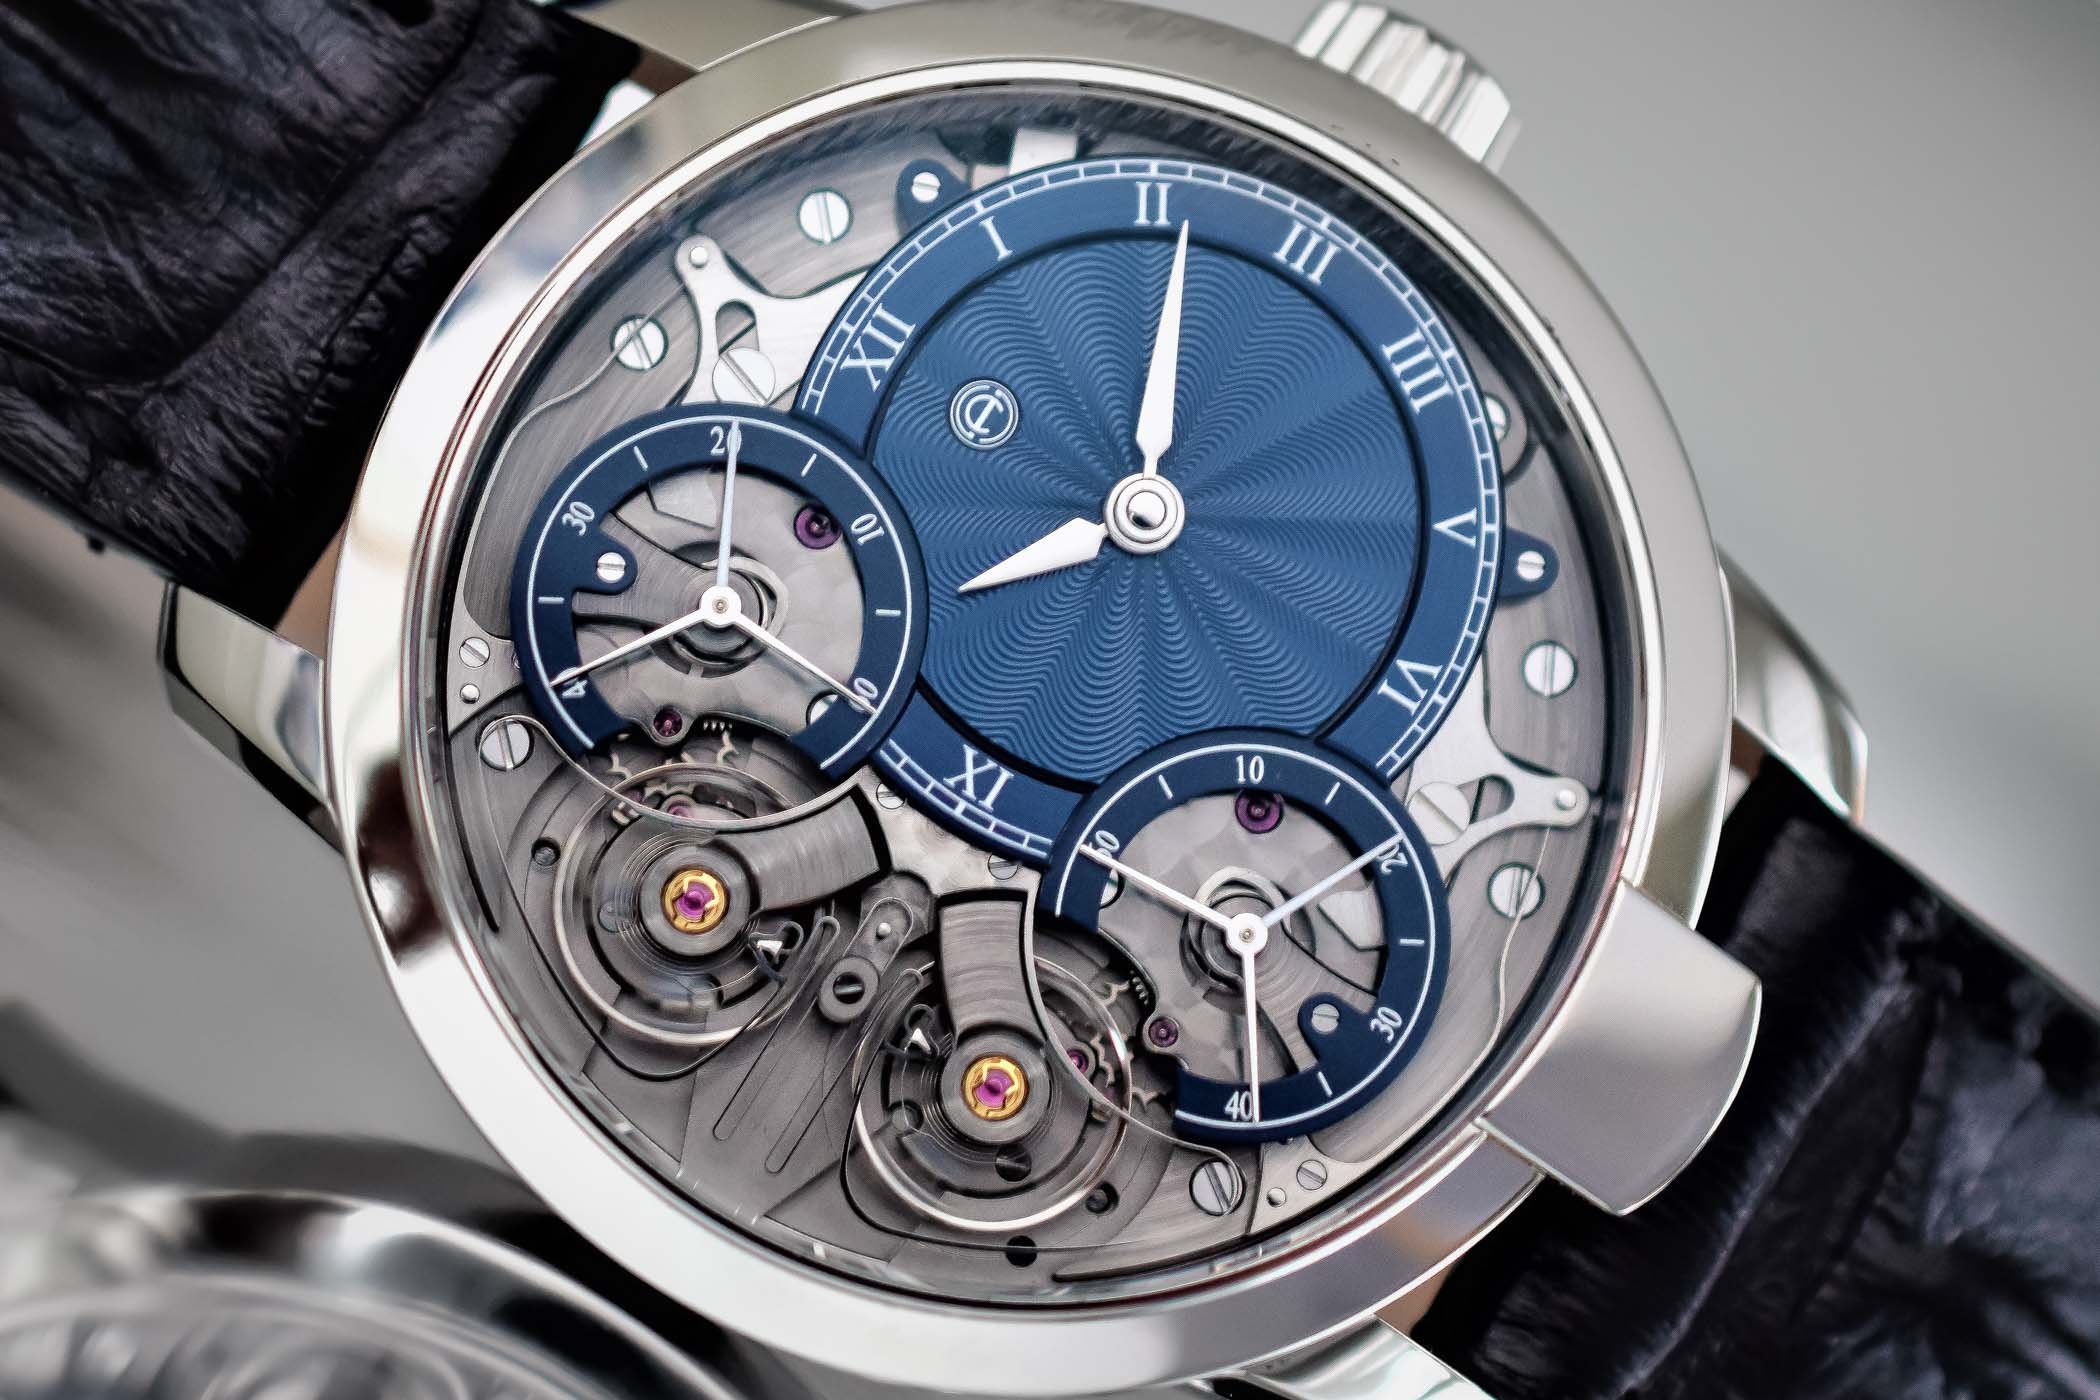 Armin-Strom-Mirrored-Force-Resonance-Guilloche-Dials-by-Voutilainen-2.jpg